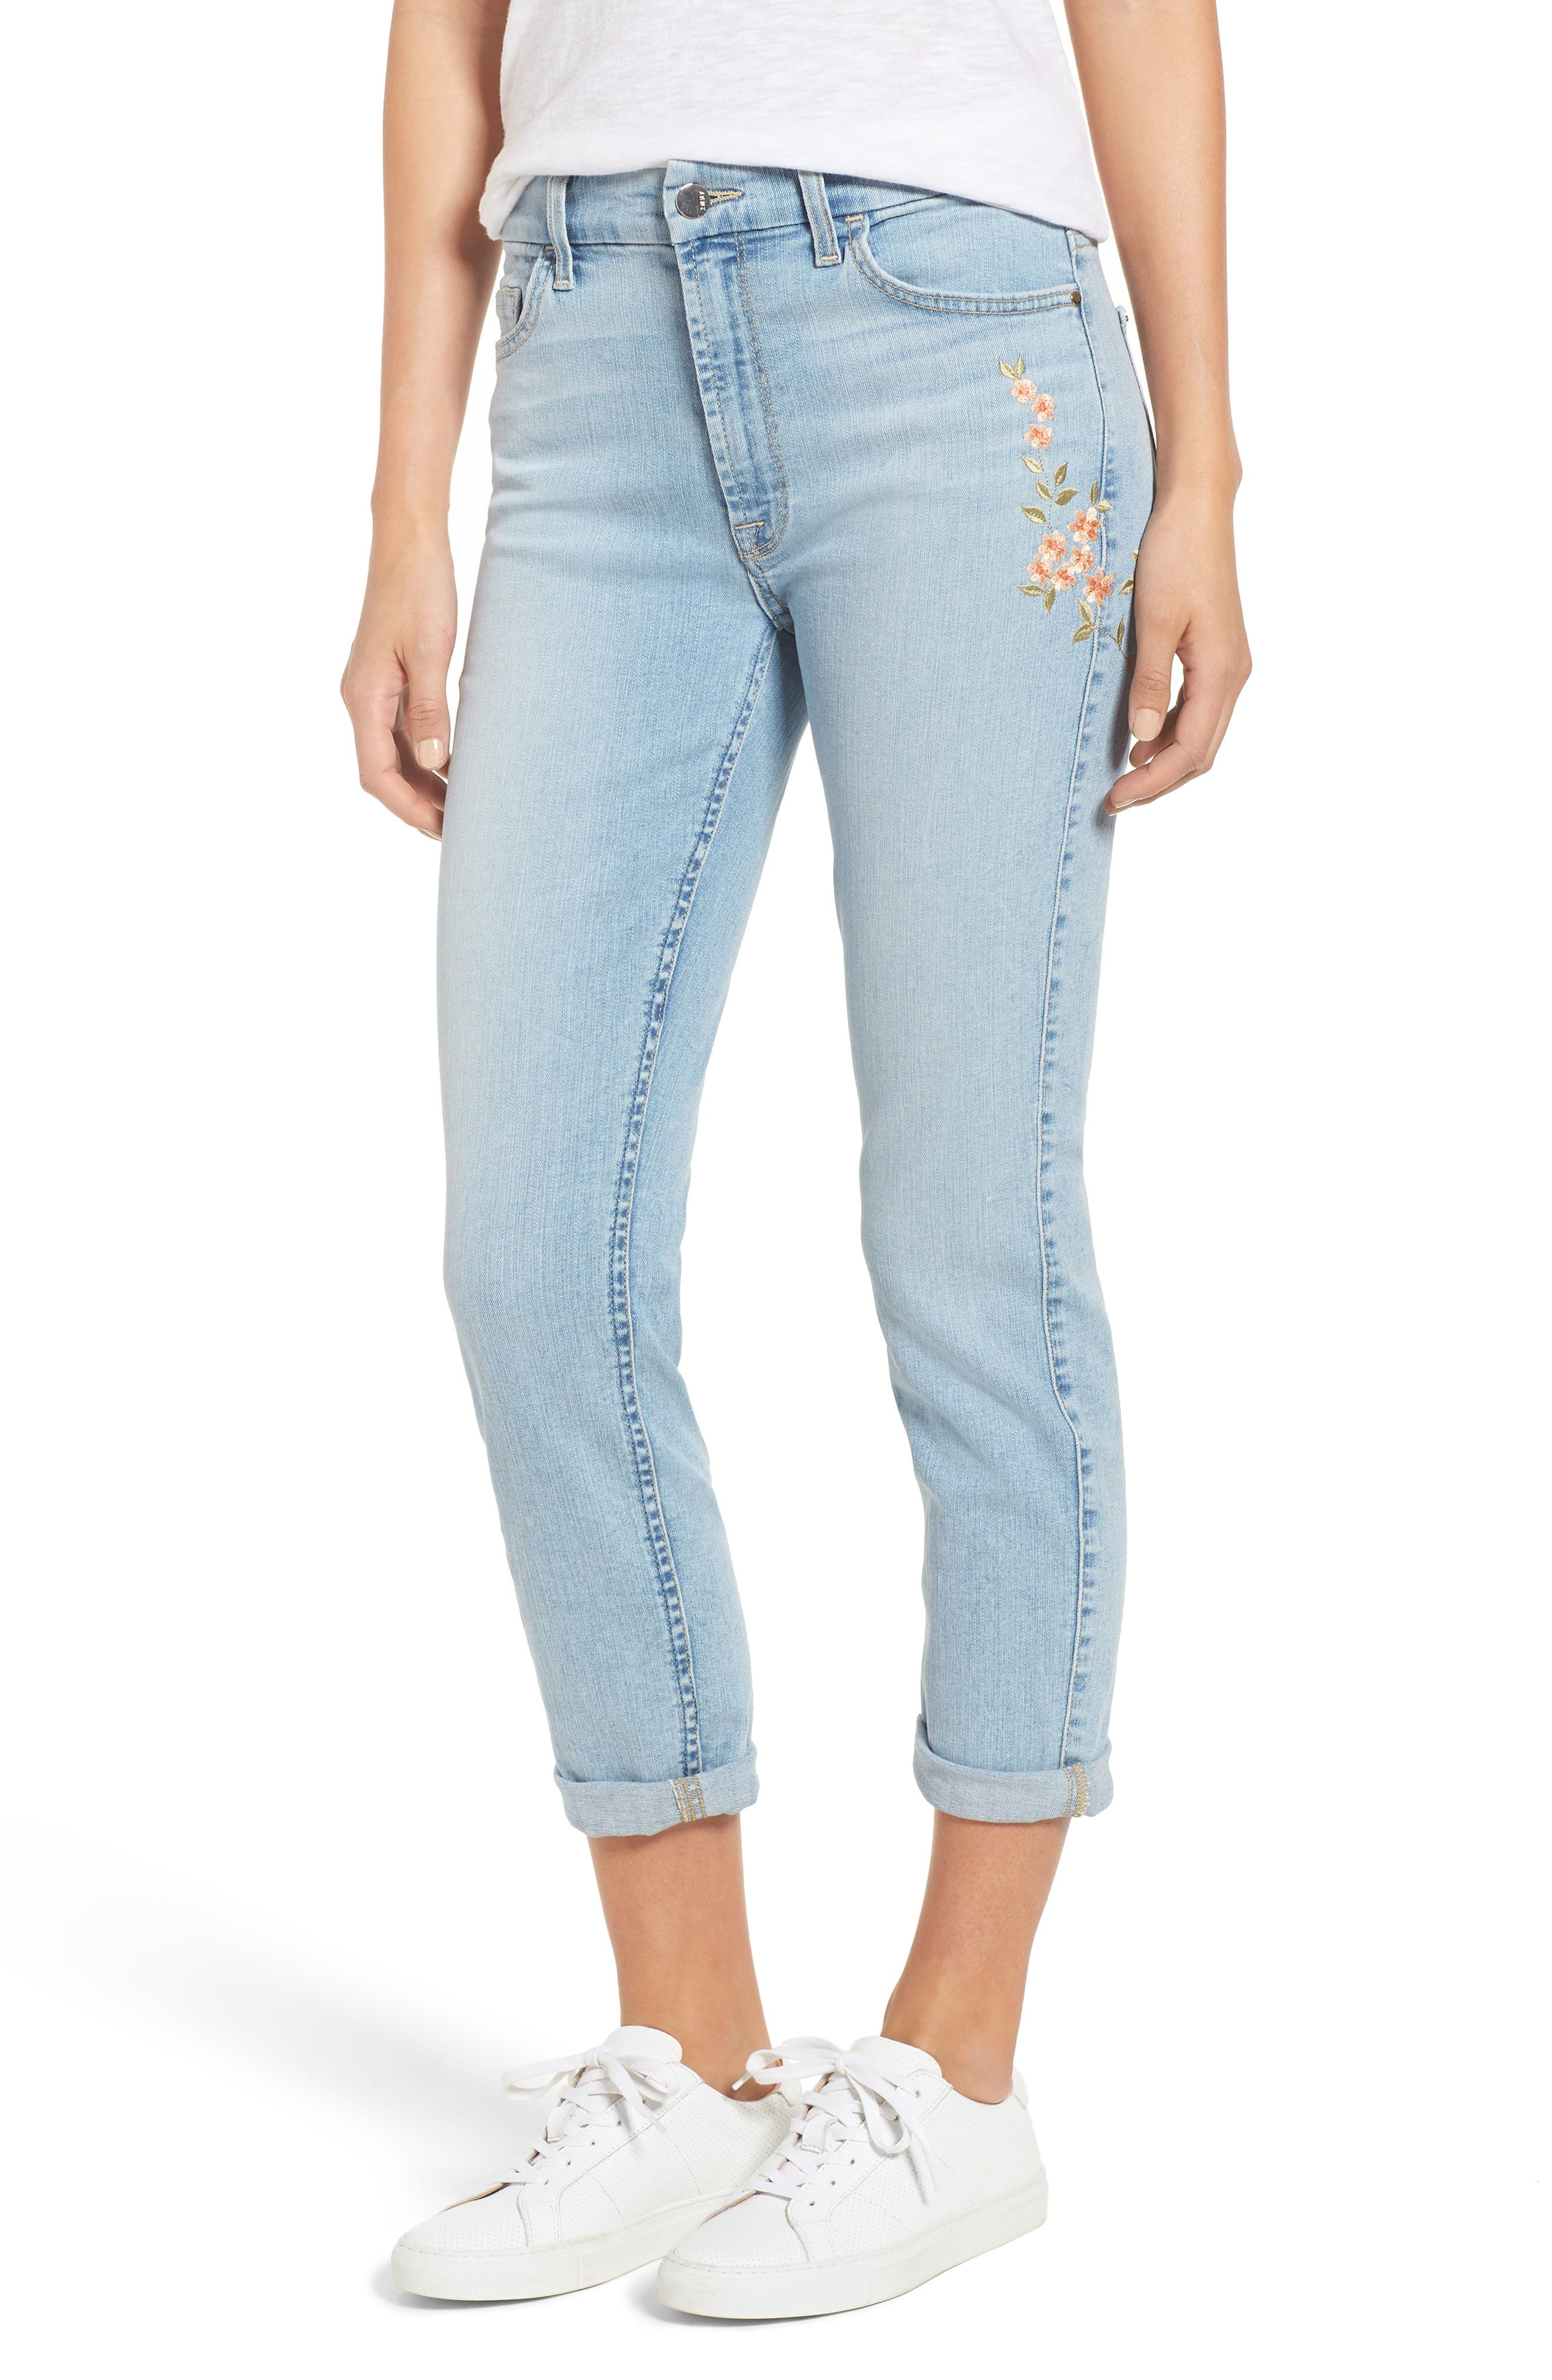 JEN7 BY 7 FOR ALL MANKIND, Embroidered Slim Boyfriend Jeans, Main thumbnail 1, color, RICHE TOUCH PLAYA VISTA